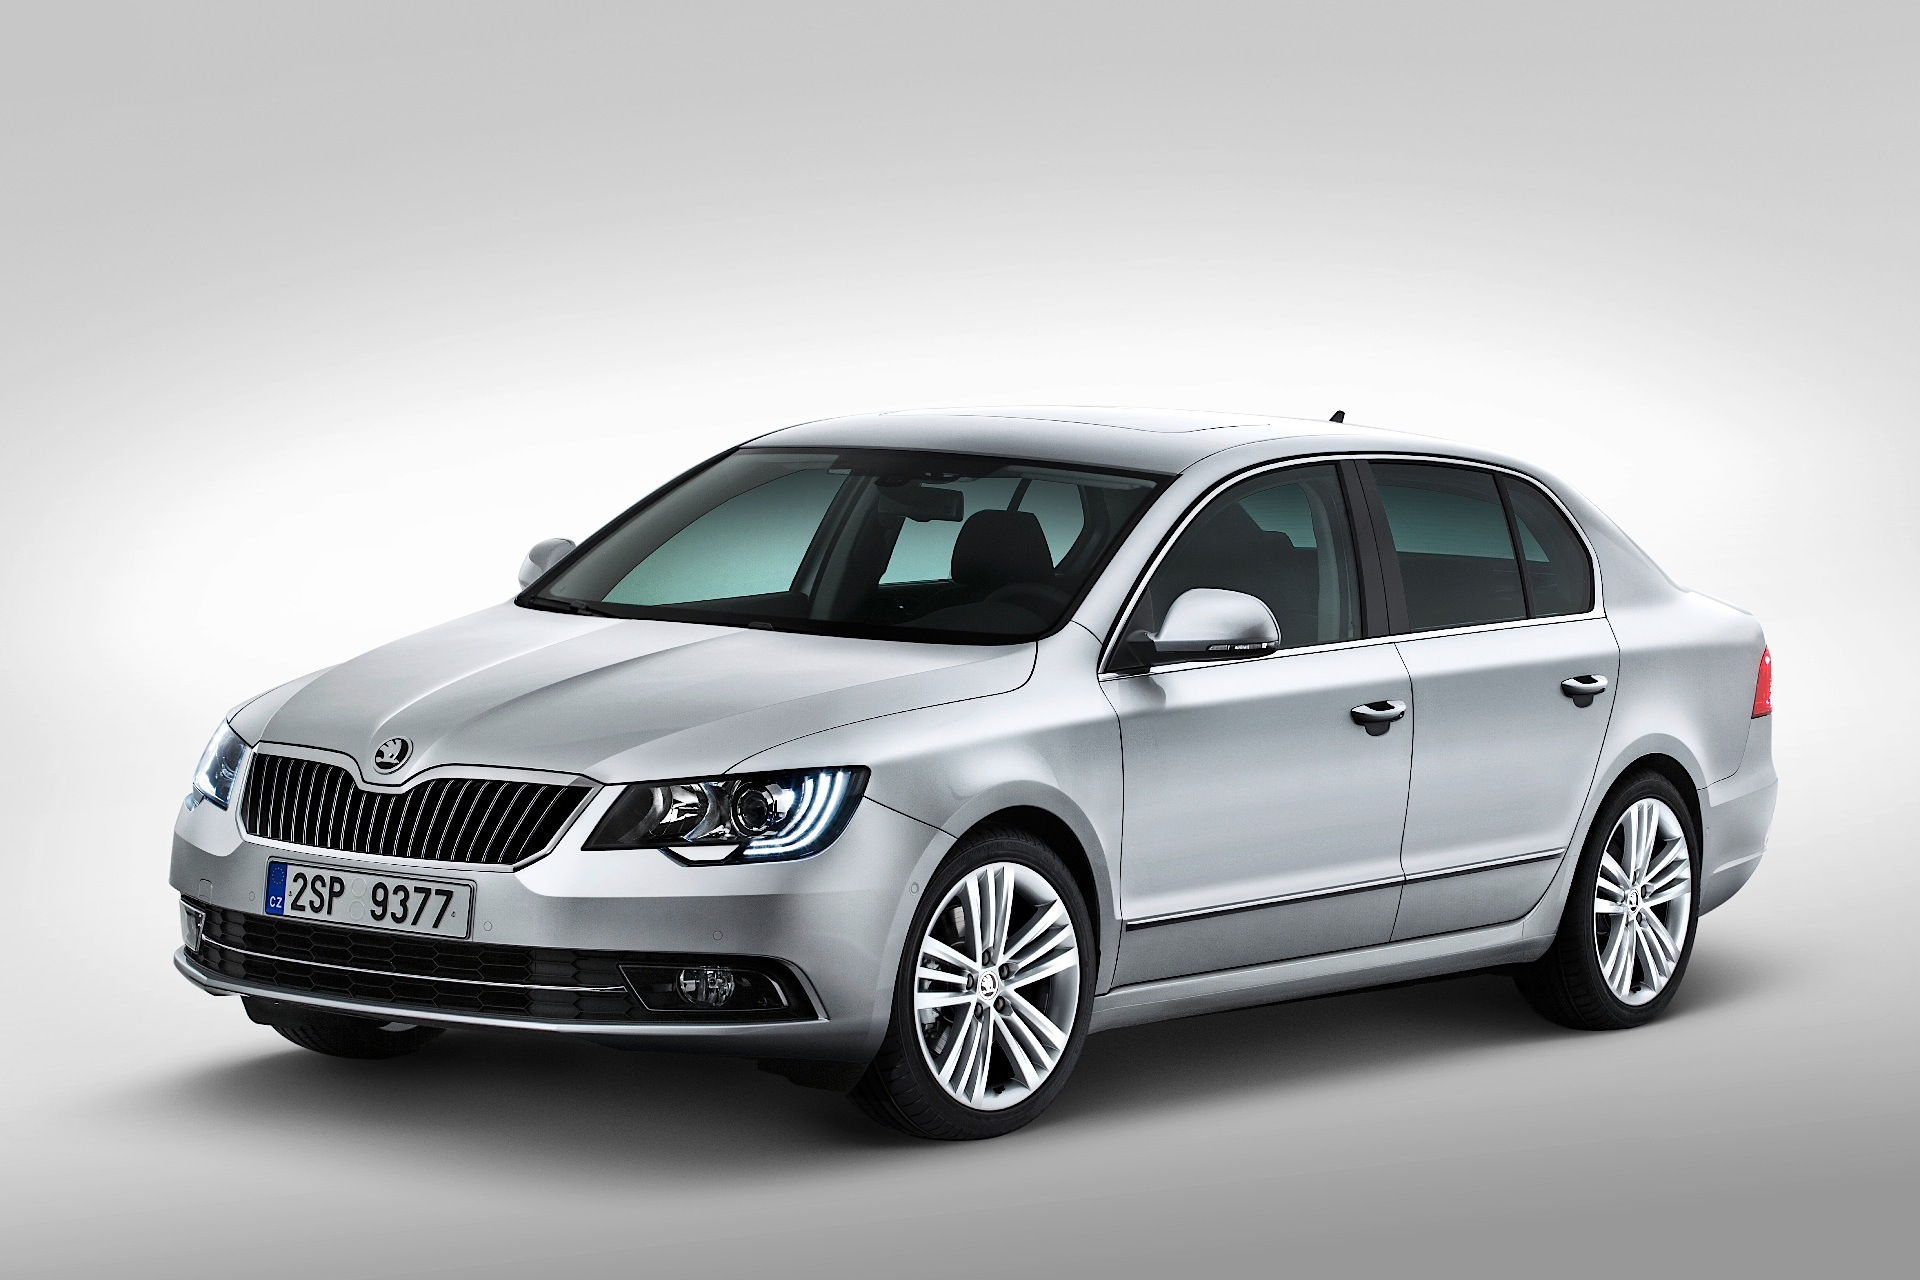 skoda superb 2013 2014 2015 autoevolution. Black Bedroom Furniture Sets. Home Design Ideas